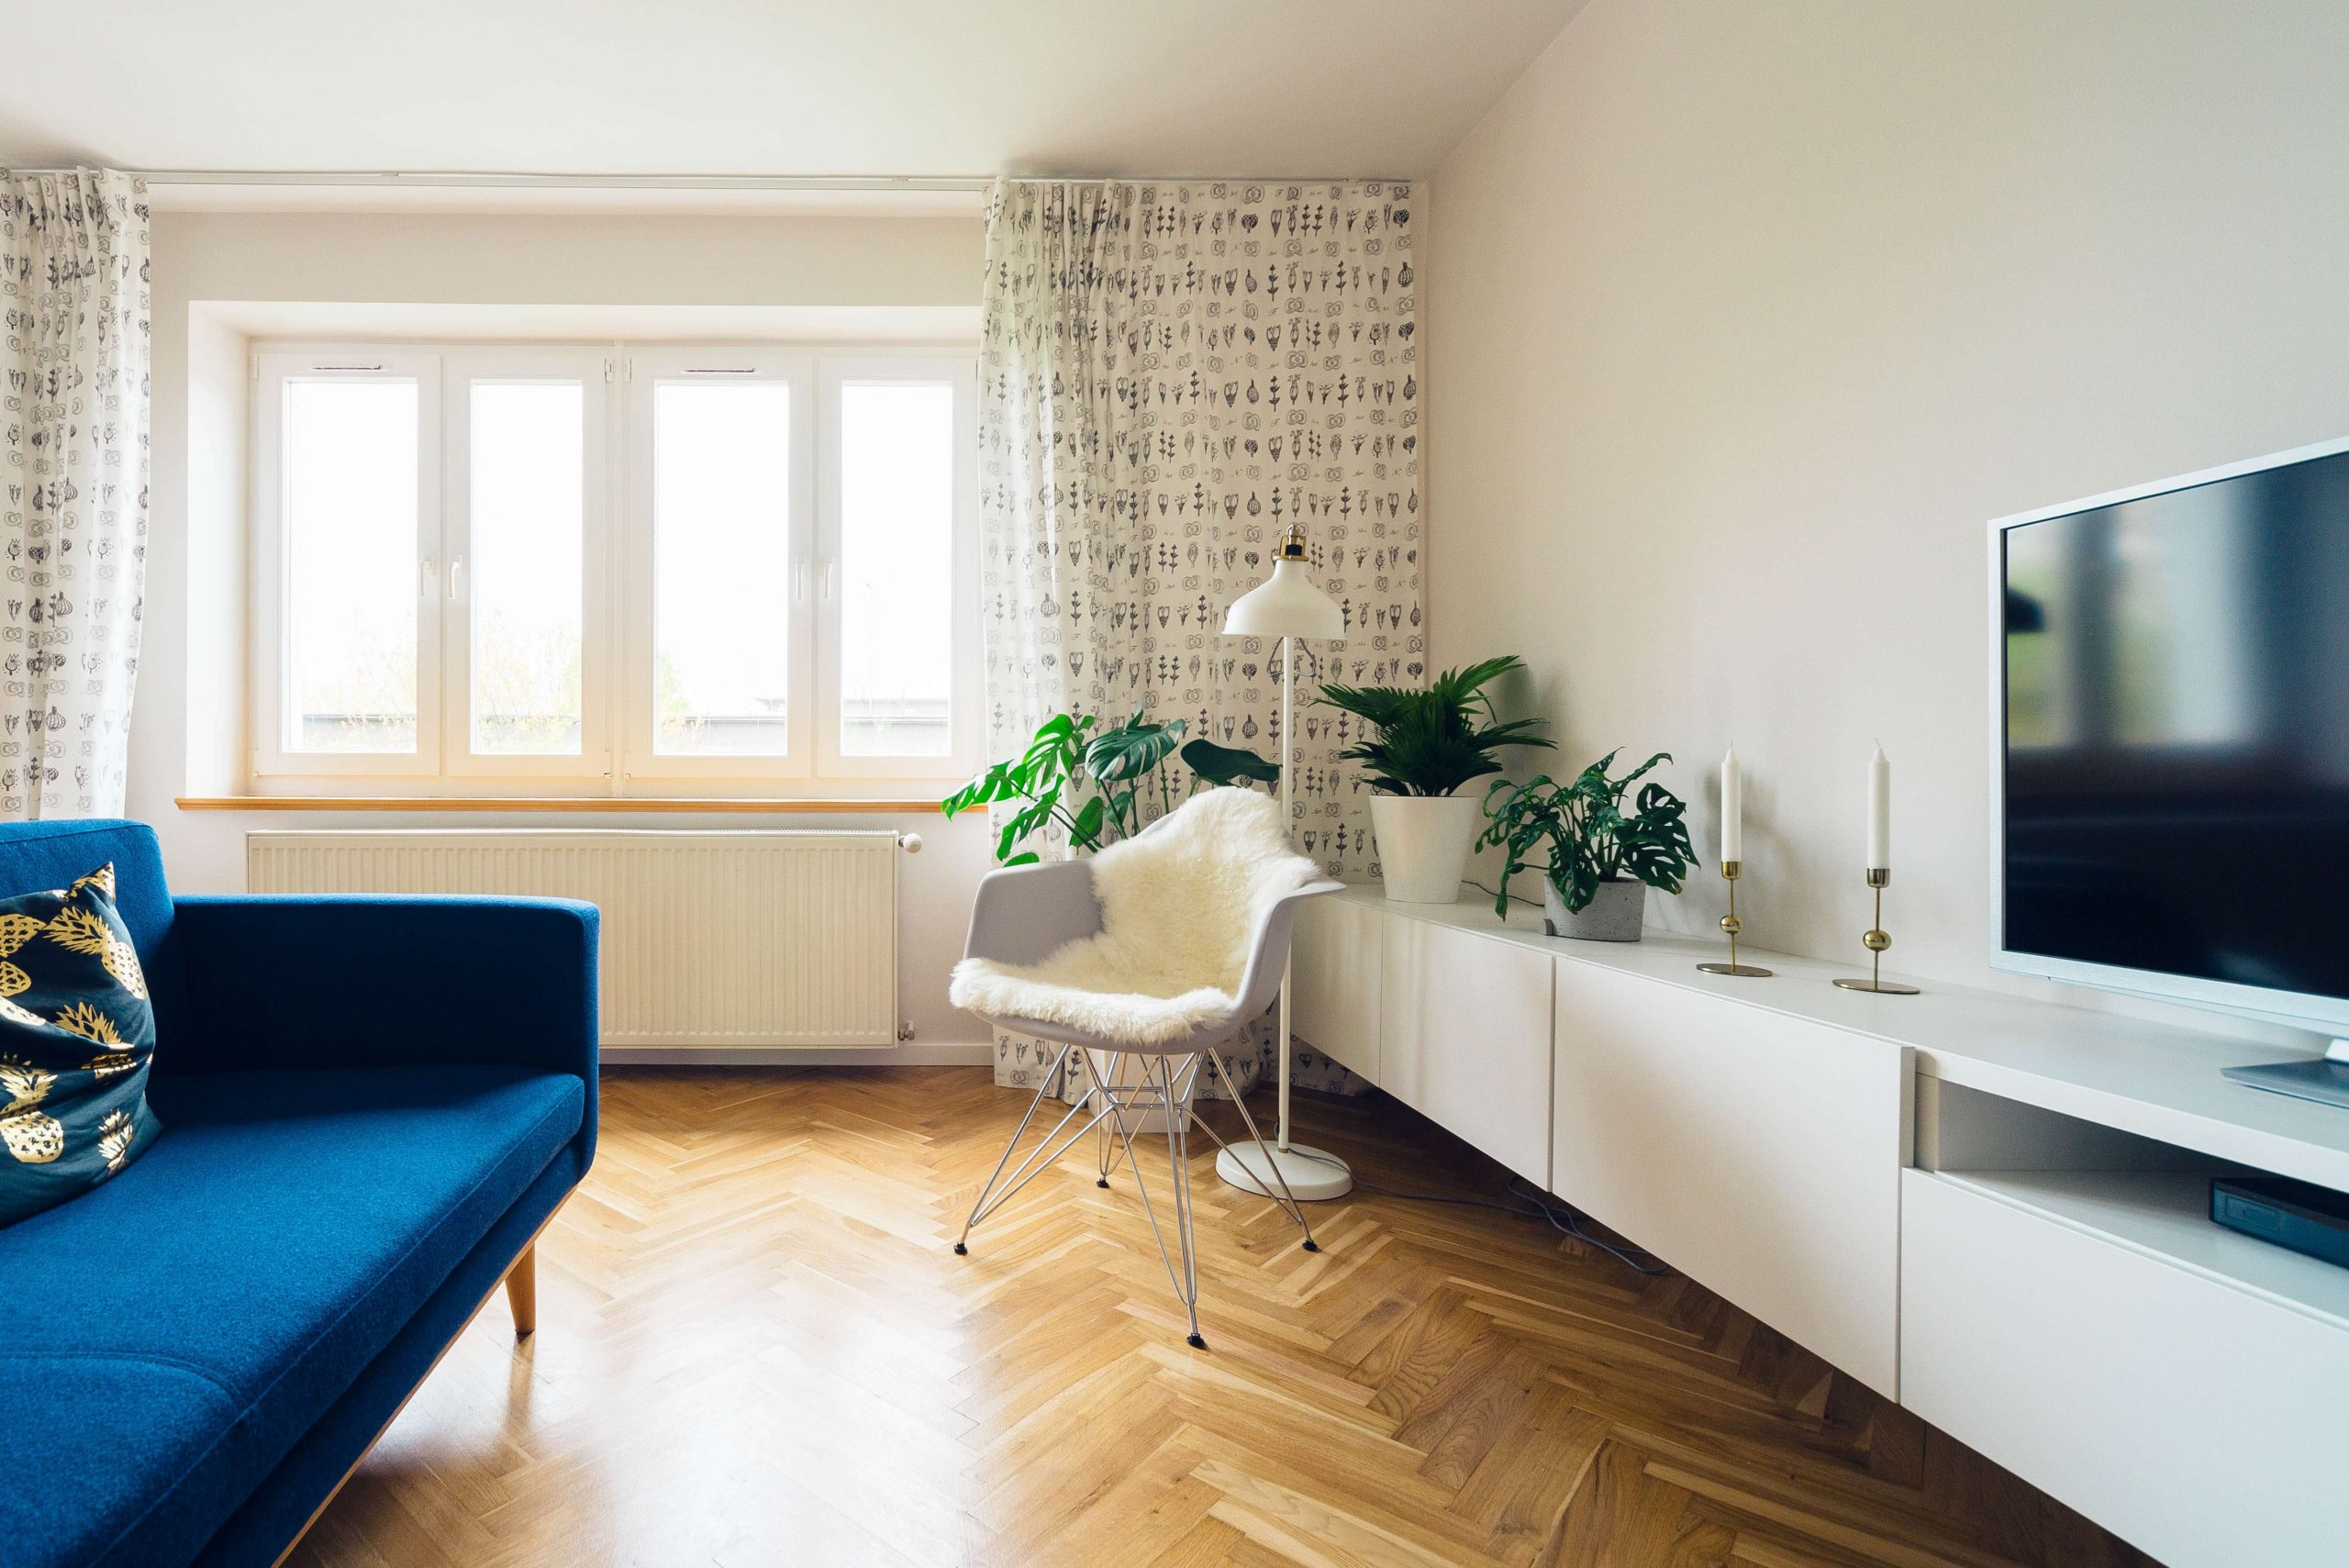 Freshen up your home with new design trends